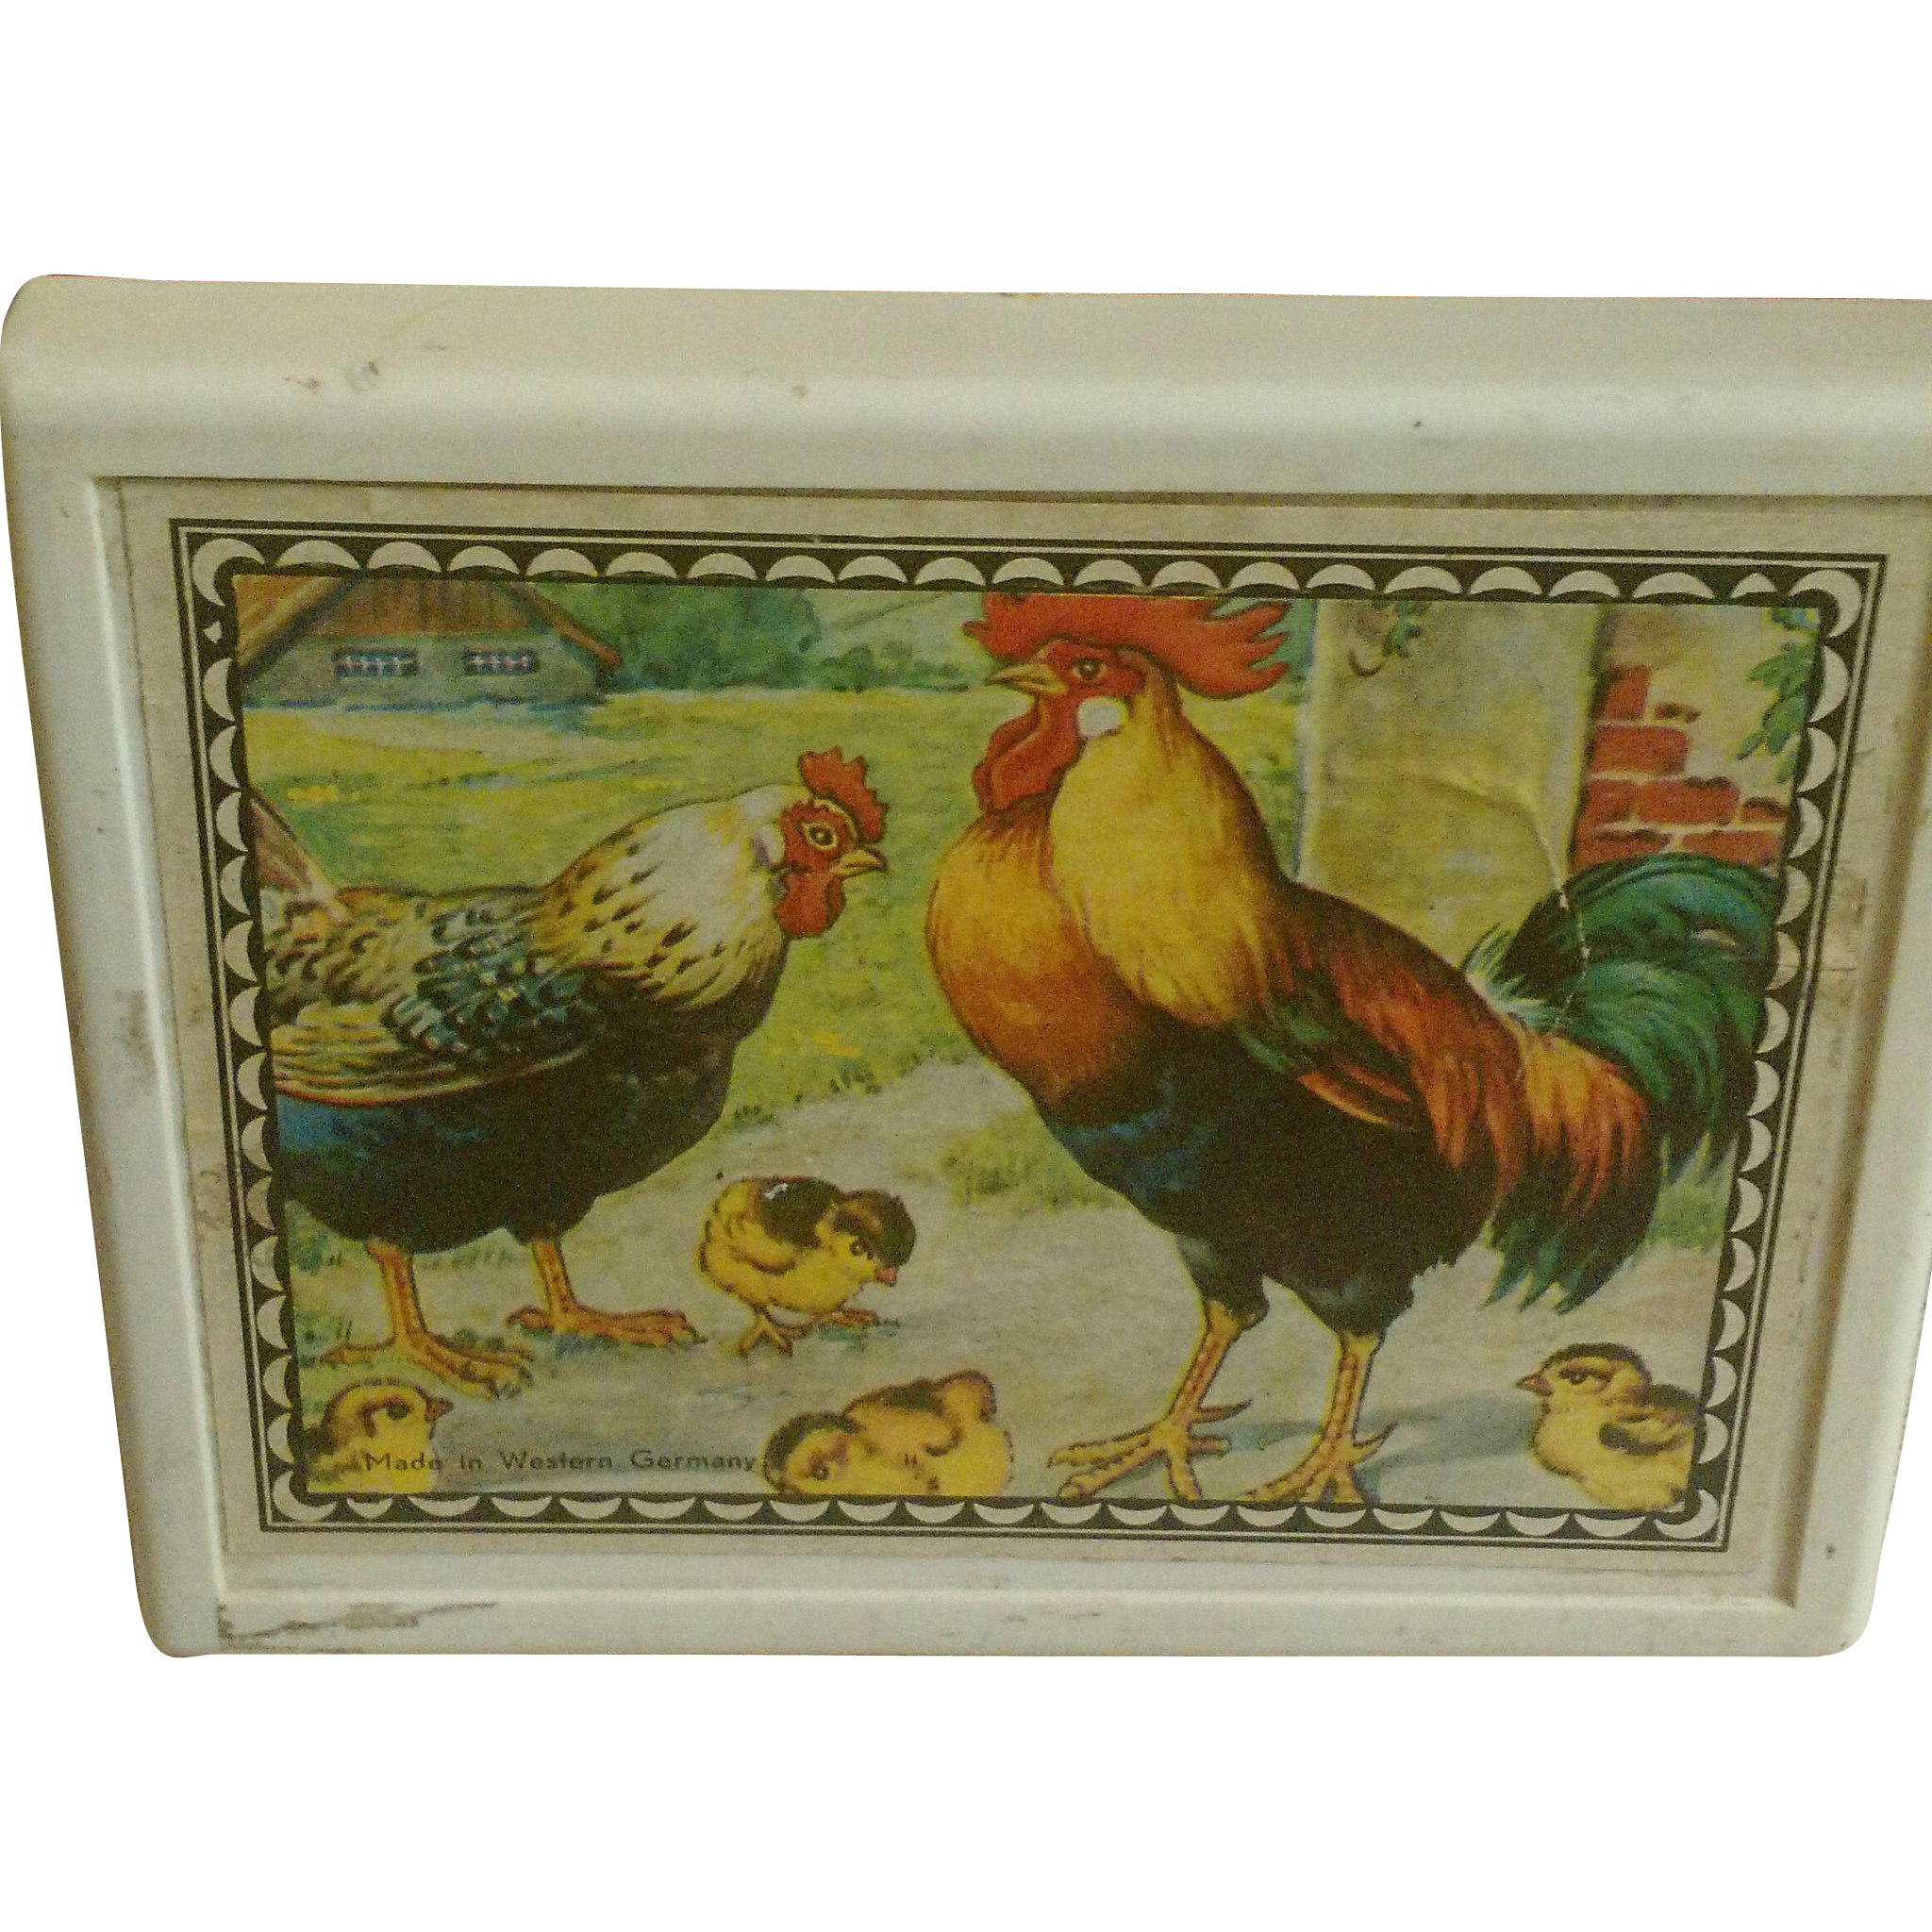 Child's Wooden Block Puzzle Western Germany